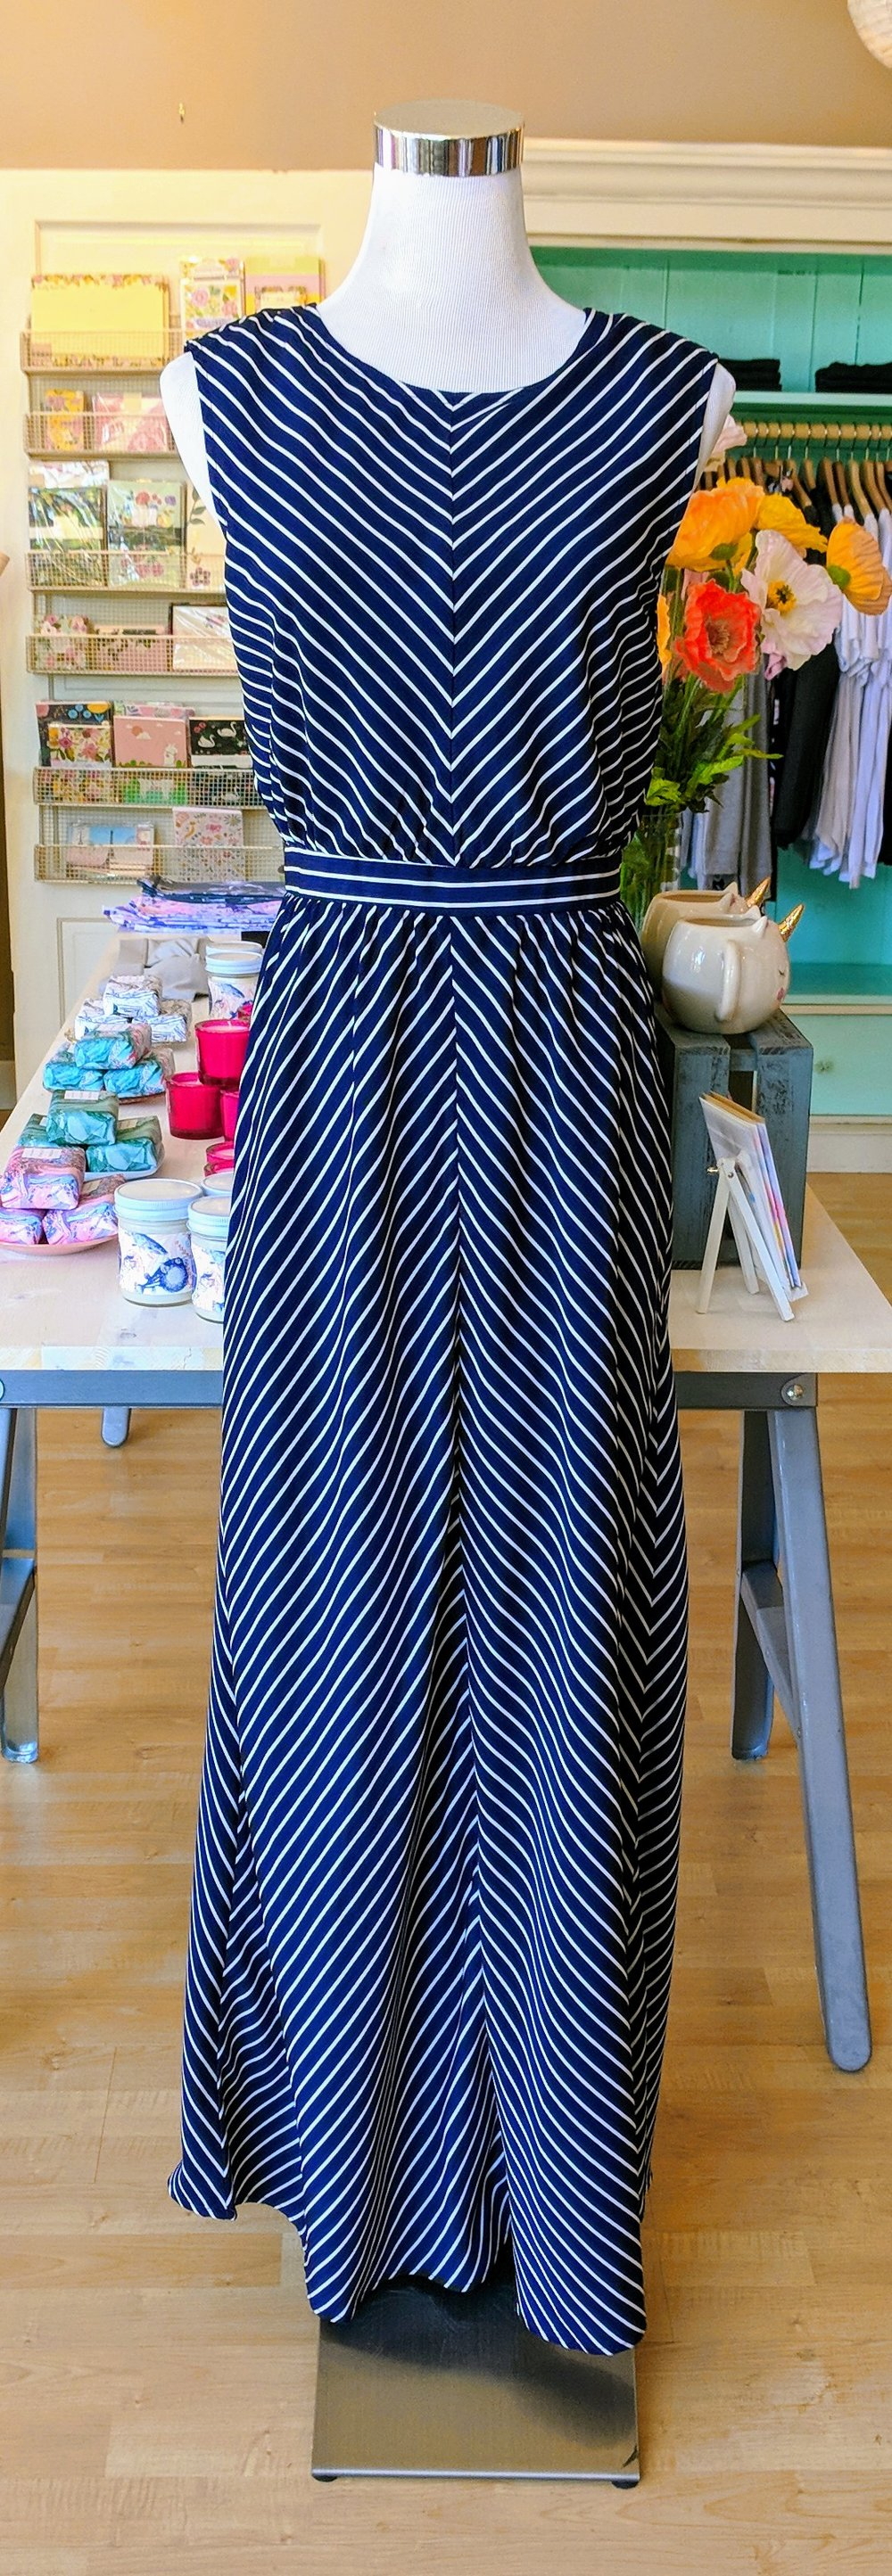 Navy stripe dress with key hole tie detail on back.